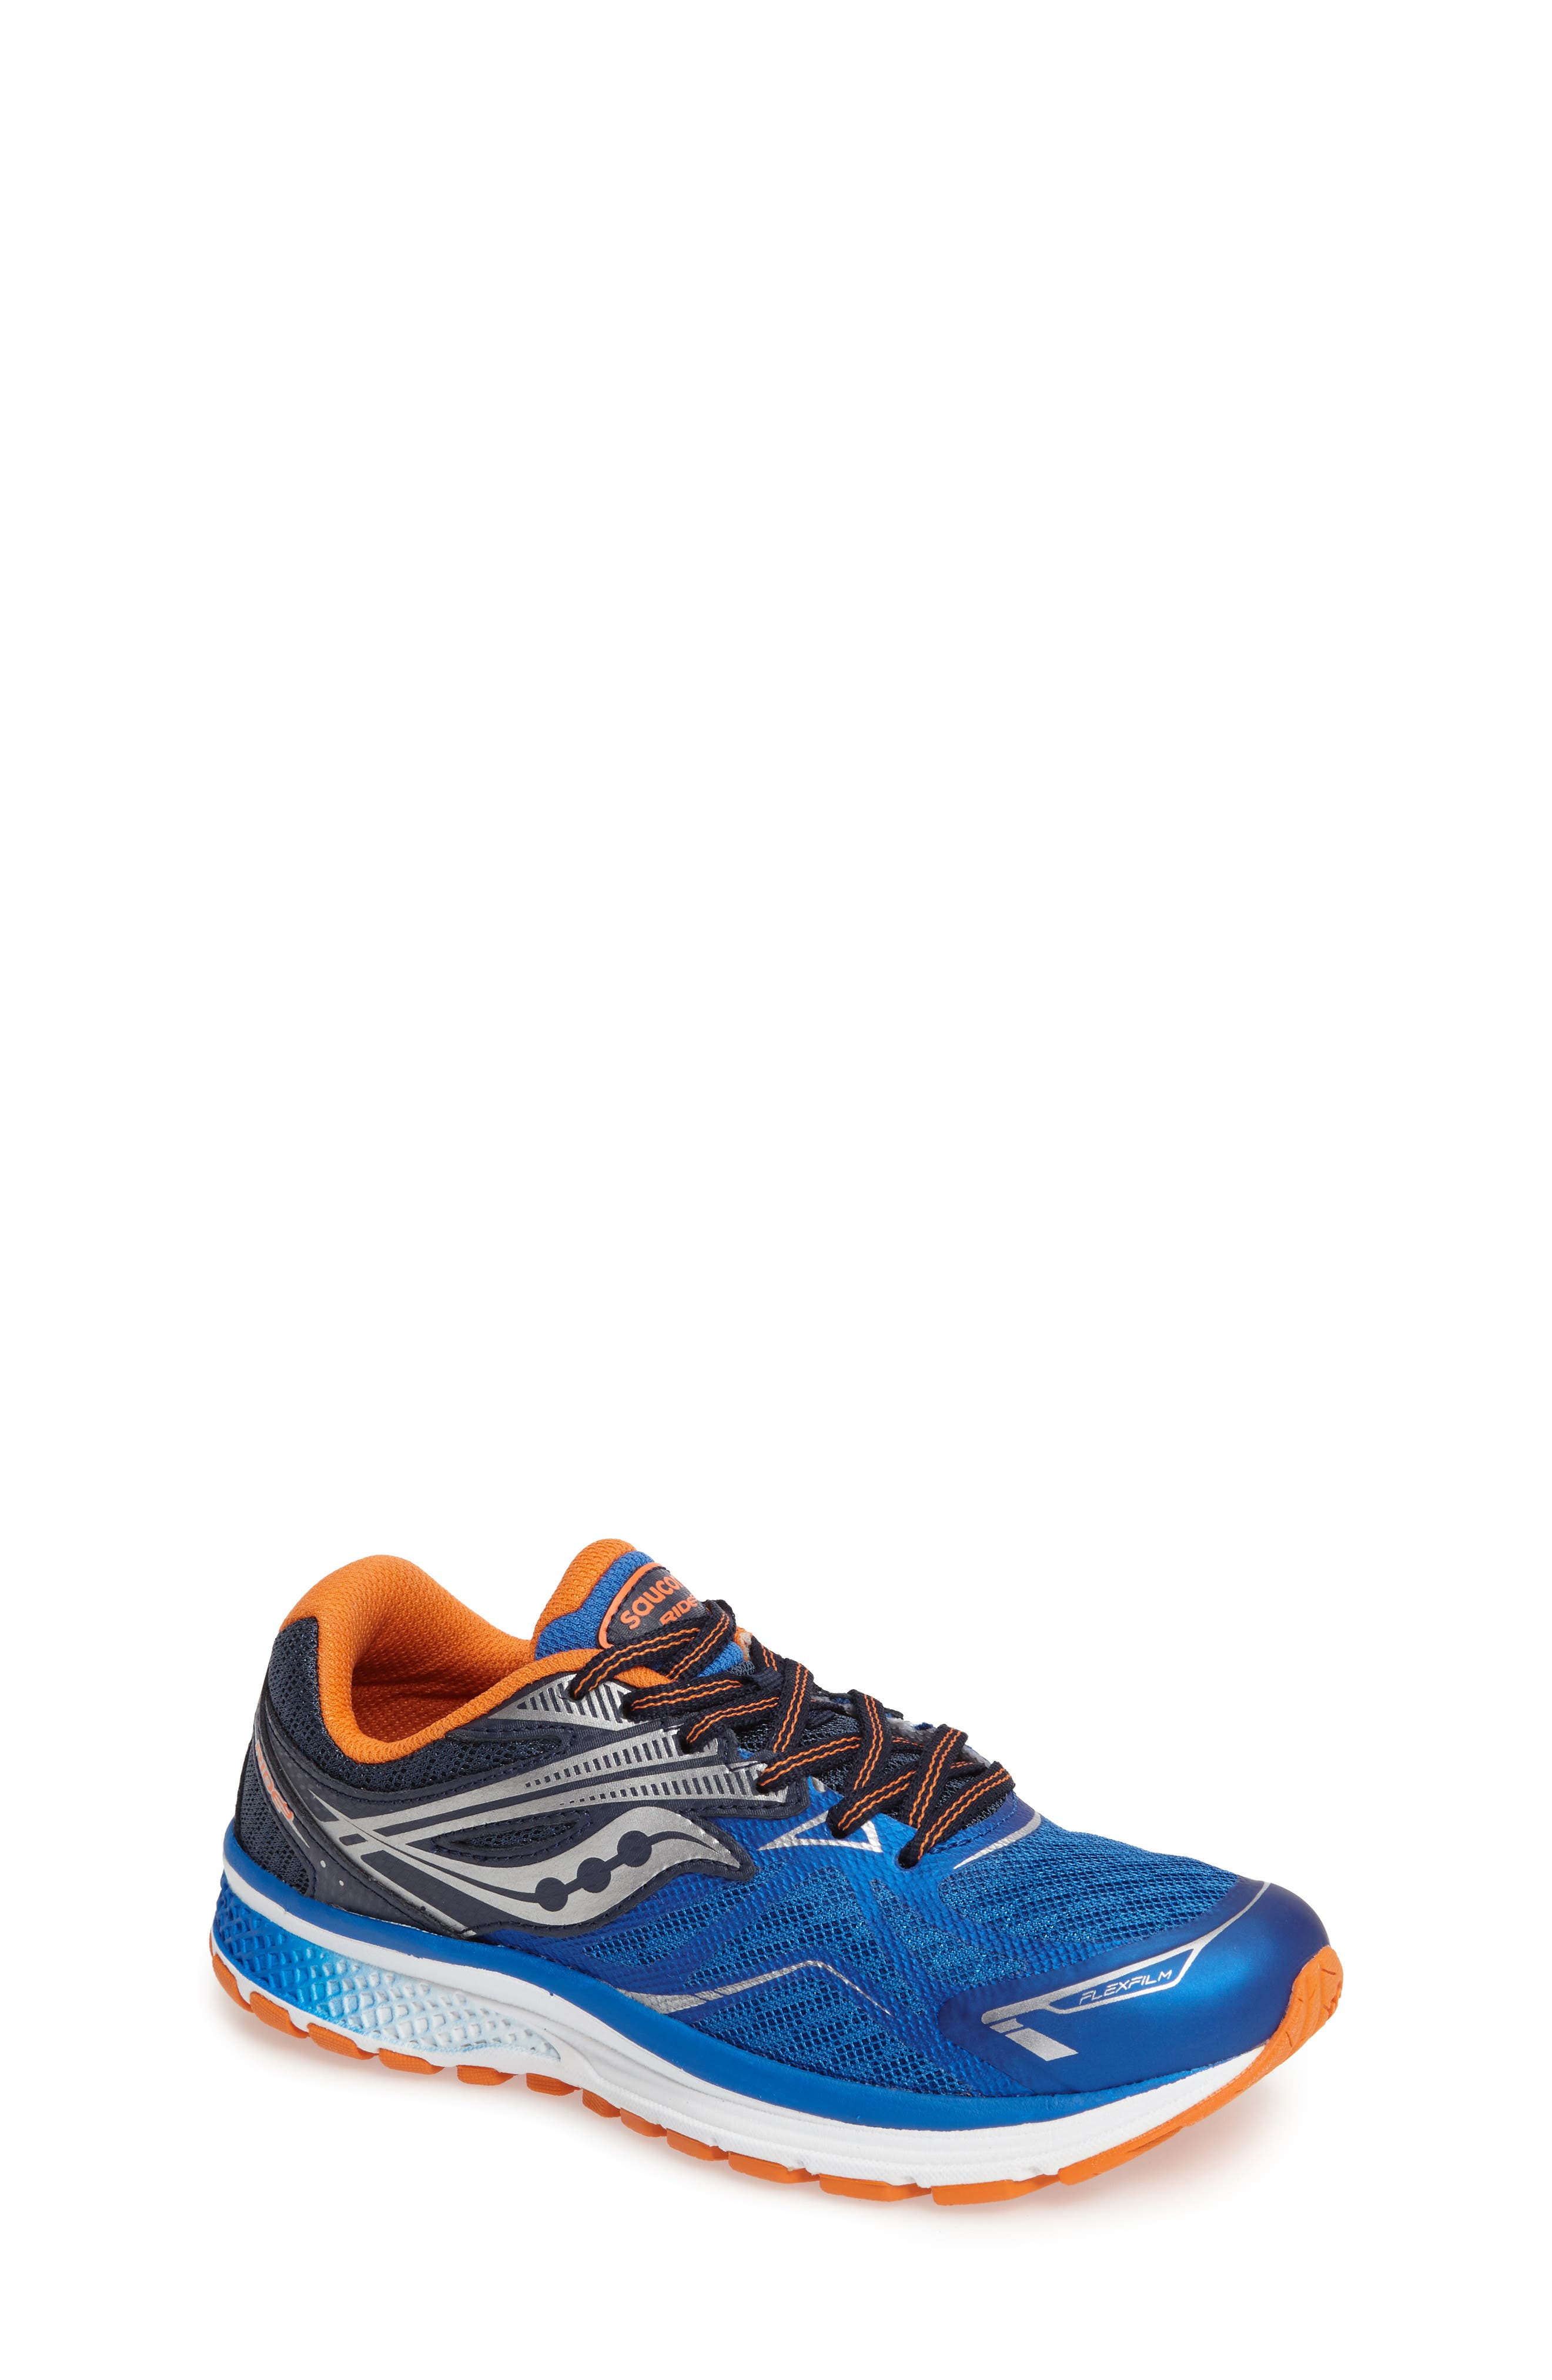 Guide 9 Running Shoe,                             Main thumbnail 1, color,                             Blue/ Orange